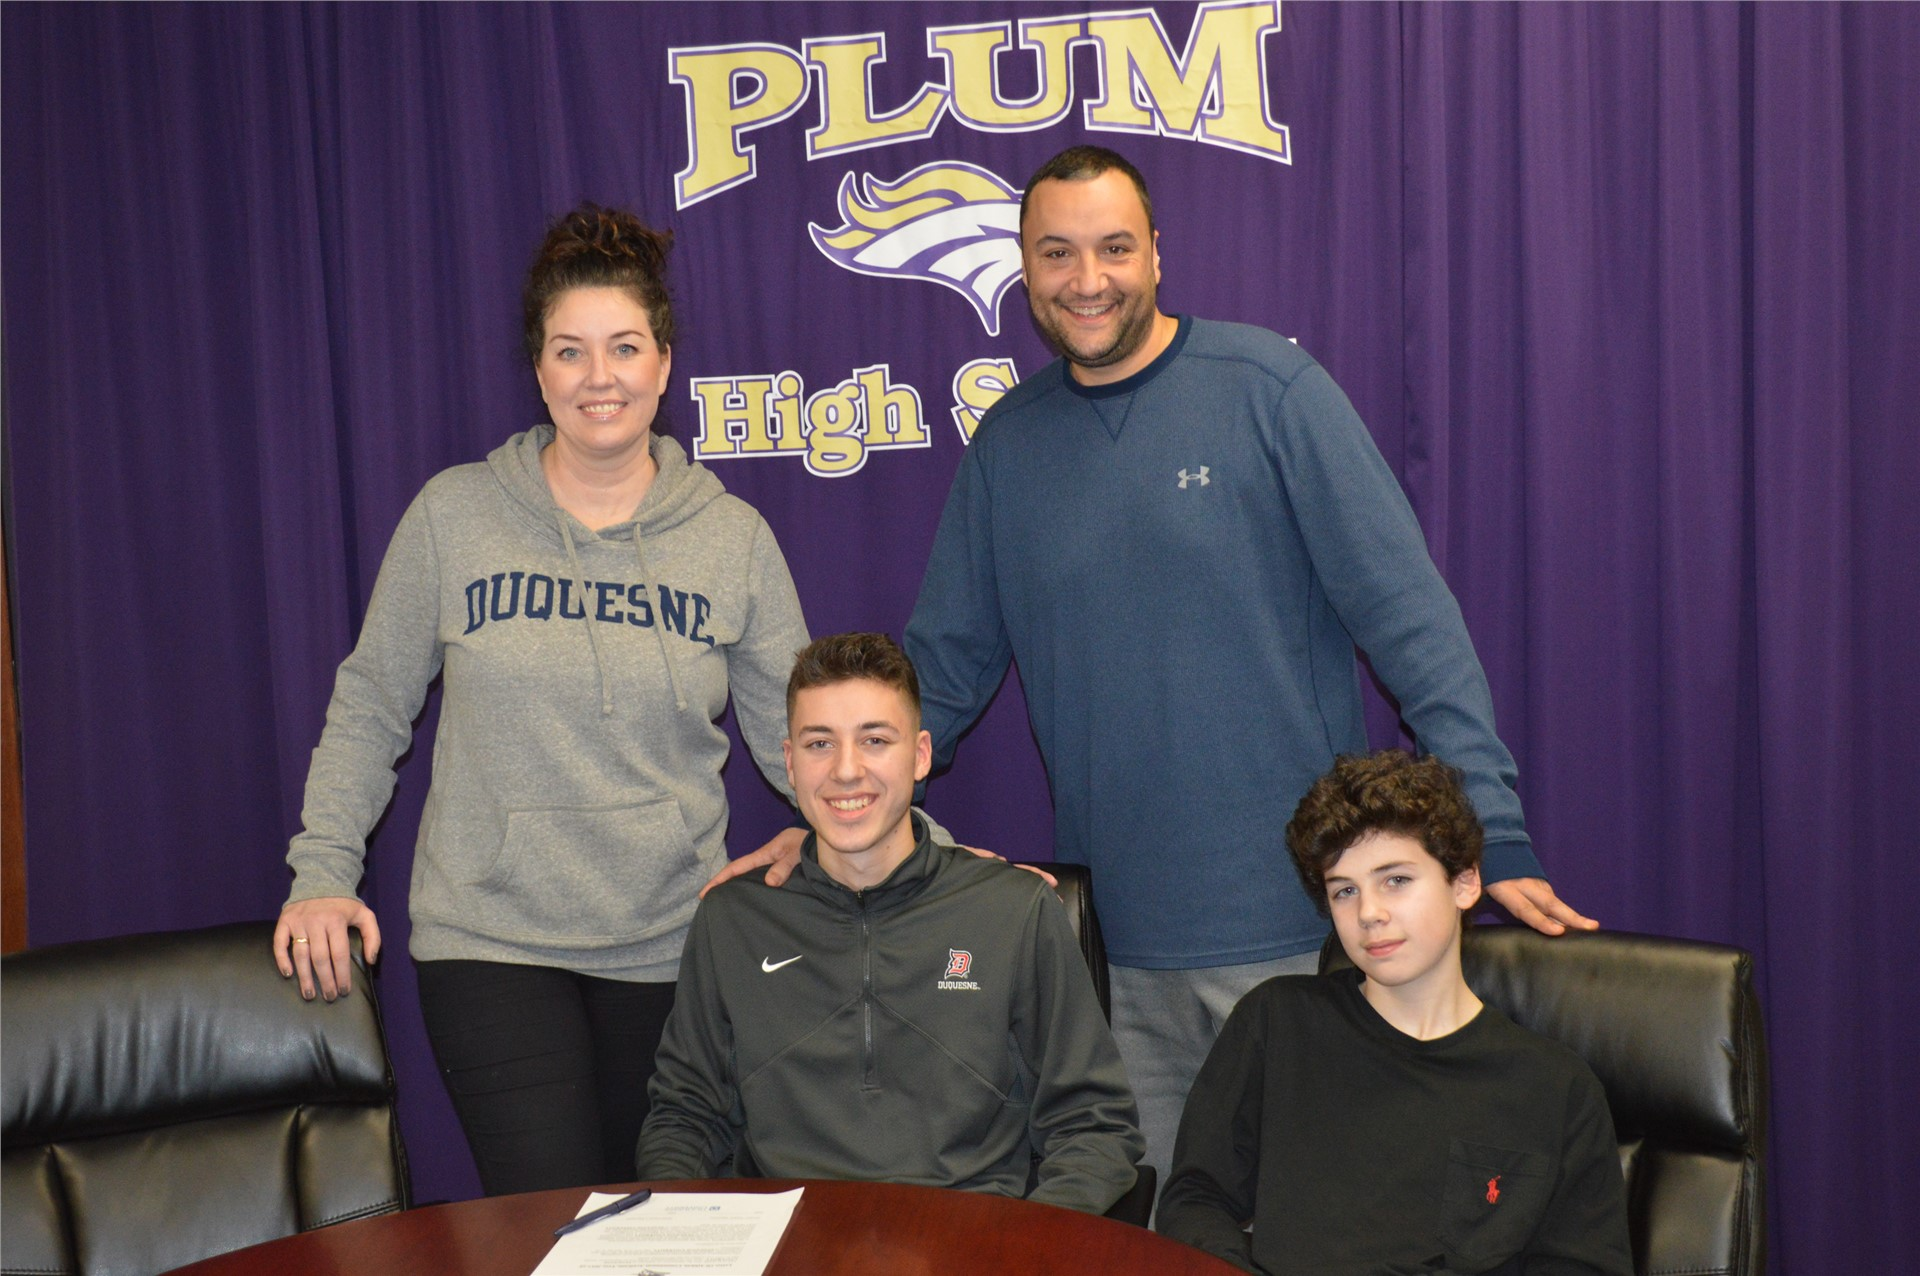 Brenden Akut commited to play soccer at Duquesne